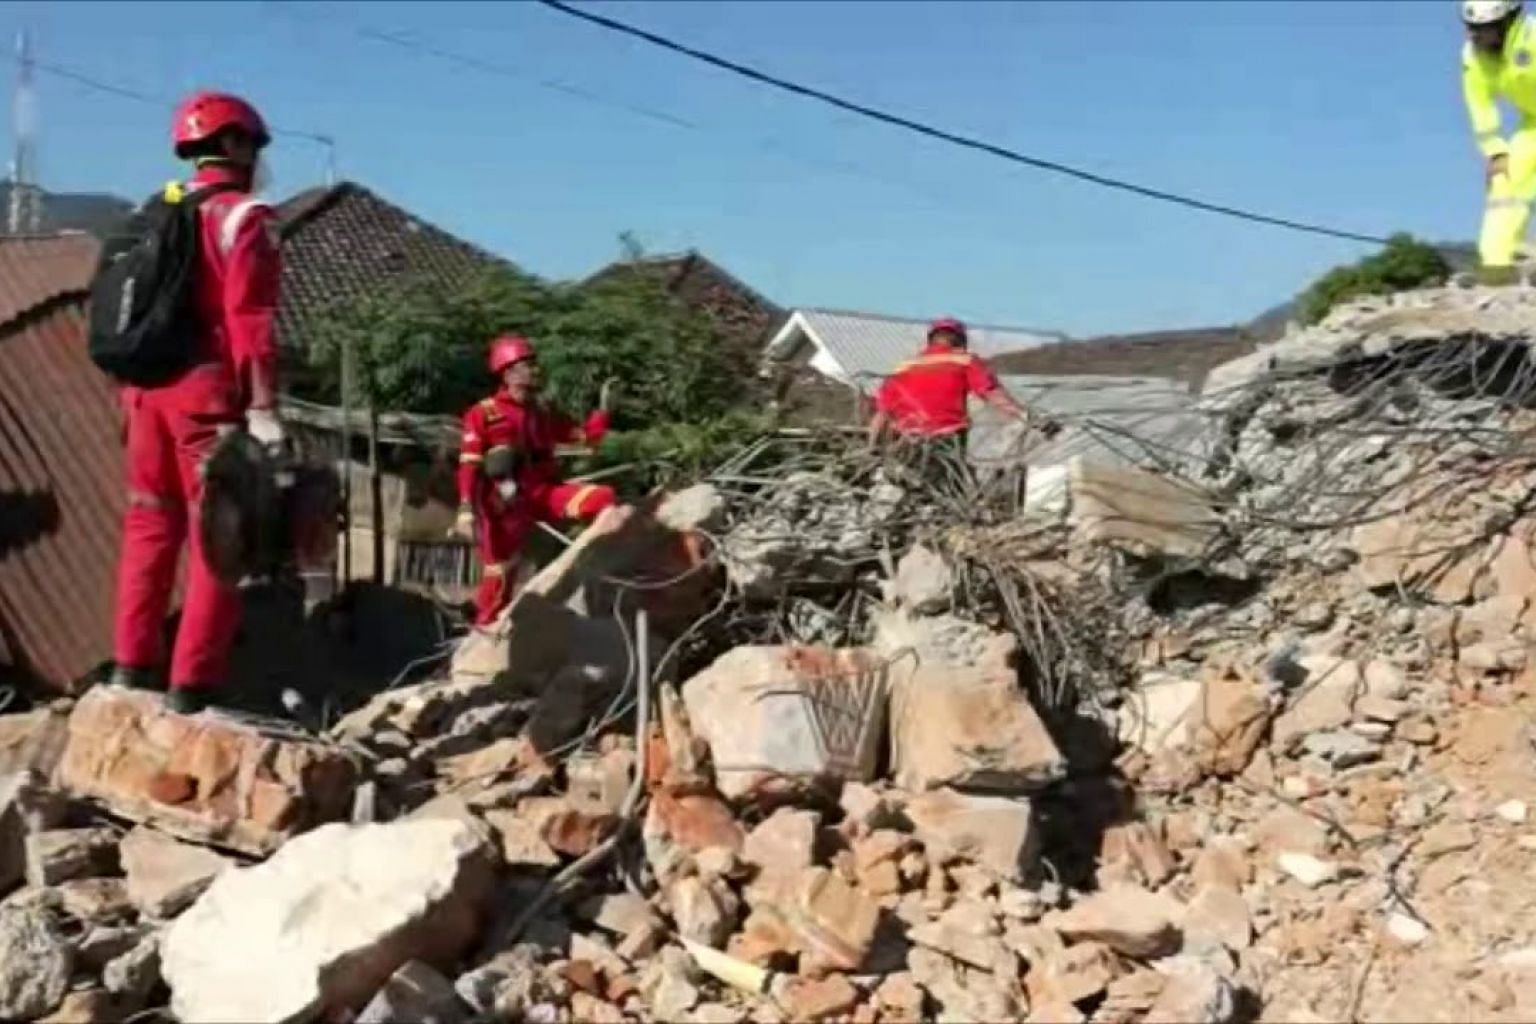 Lombok quake: Rescue workers scrambling to search for survivors